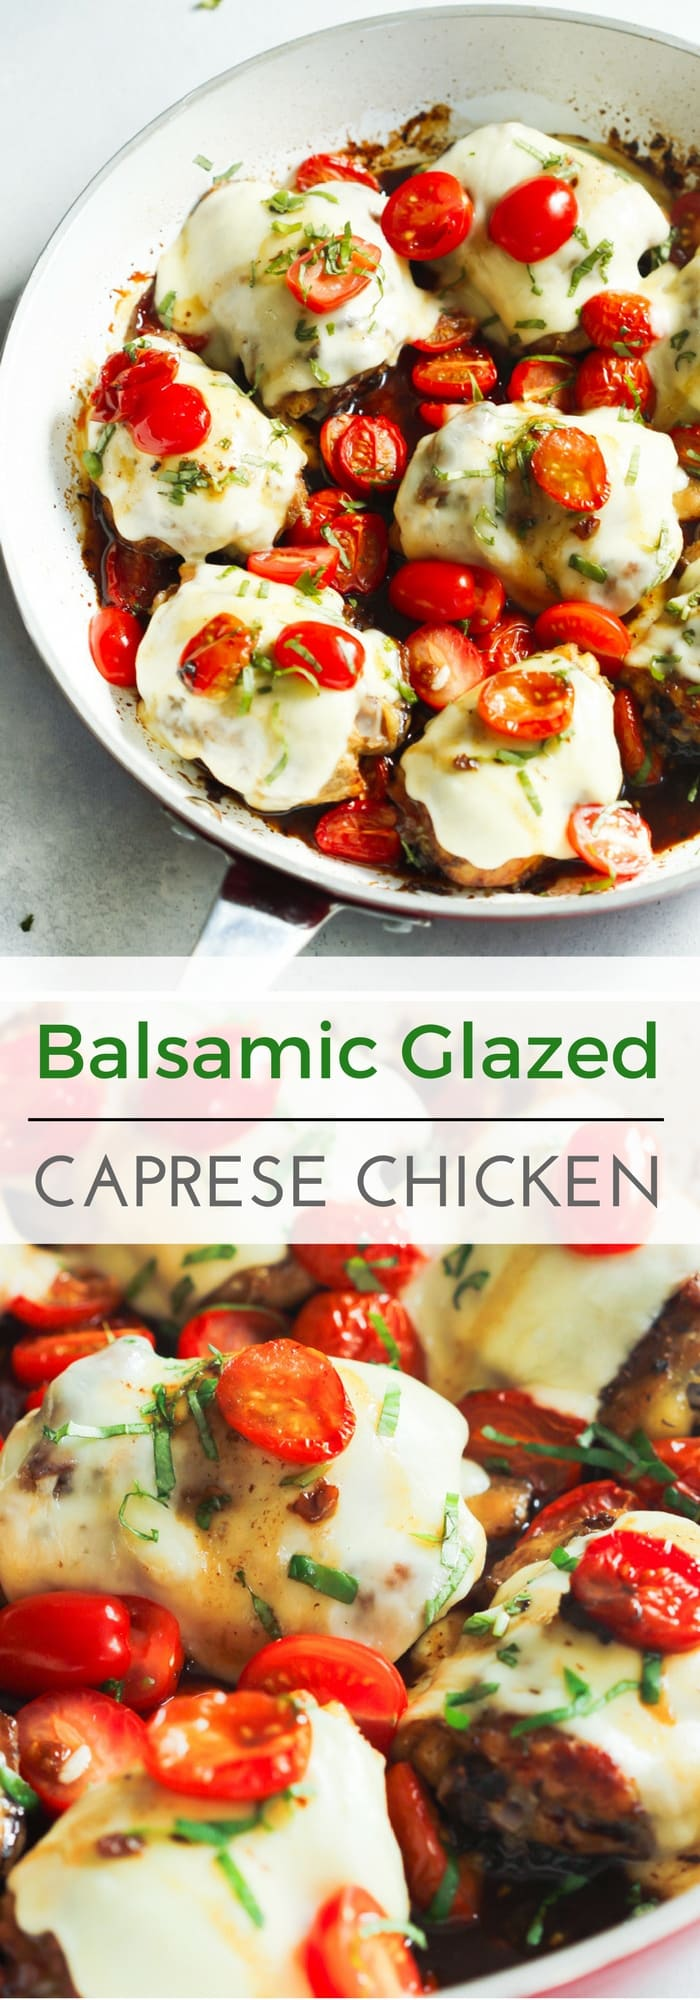 This One-Pan Balsamic Glazed Caprese Chicken is a low-carb recipe that is baked in a flavourful balsamic glaze. It's also done in 35 minutes.